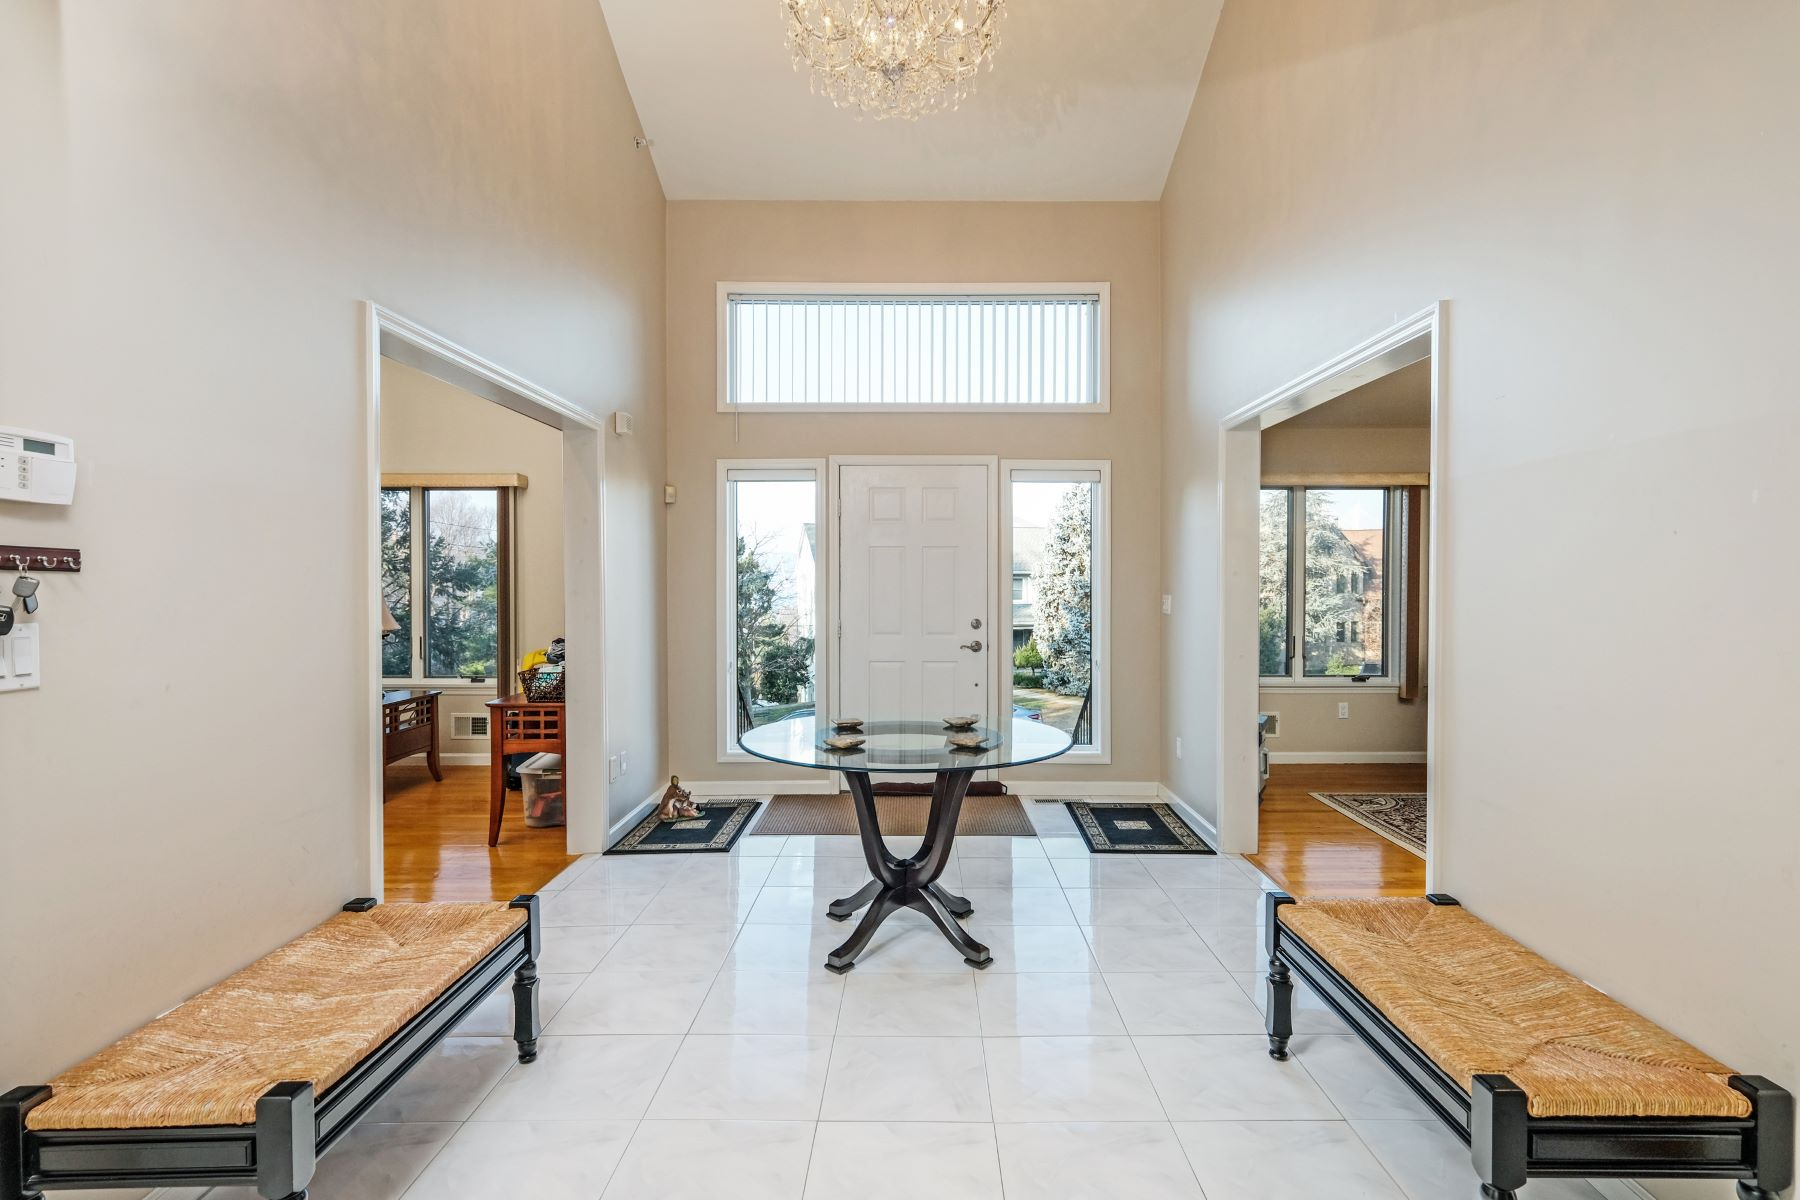 Single Family Homes for Active at 1 Hudson Place Tarrytown, New York 10591 United States